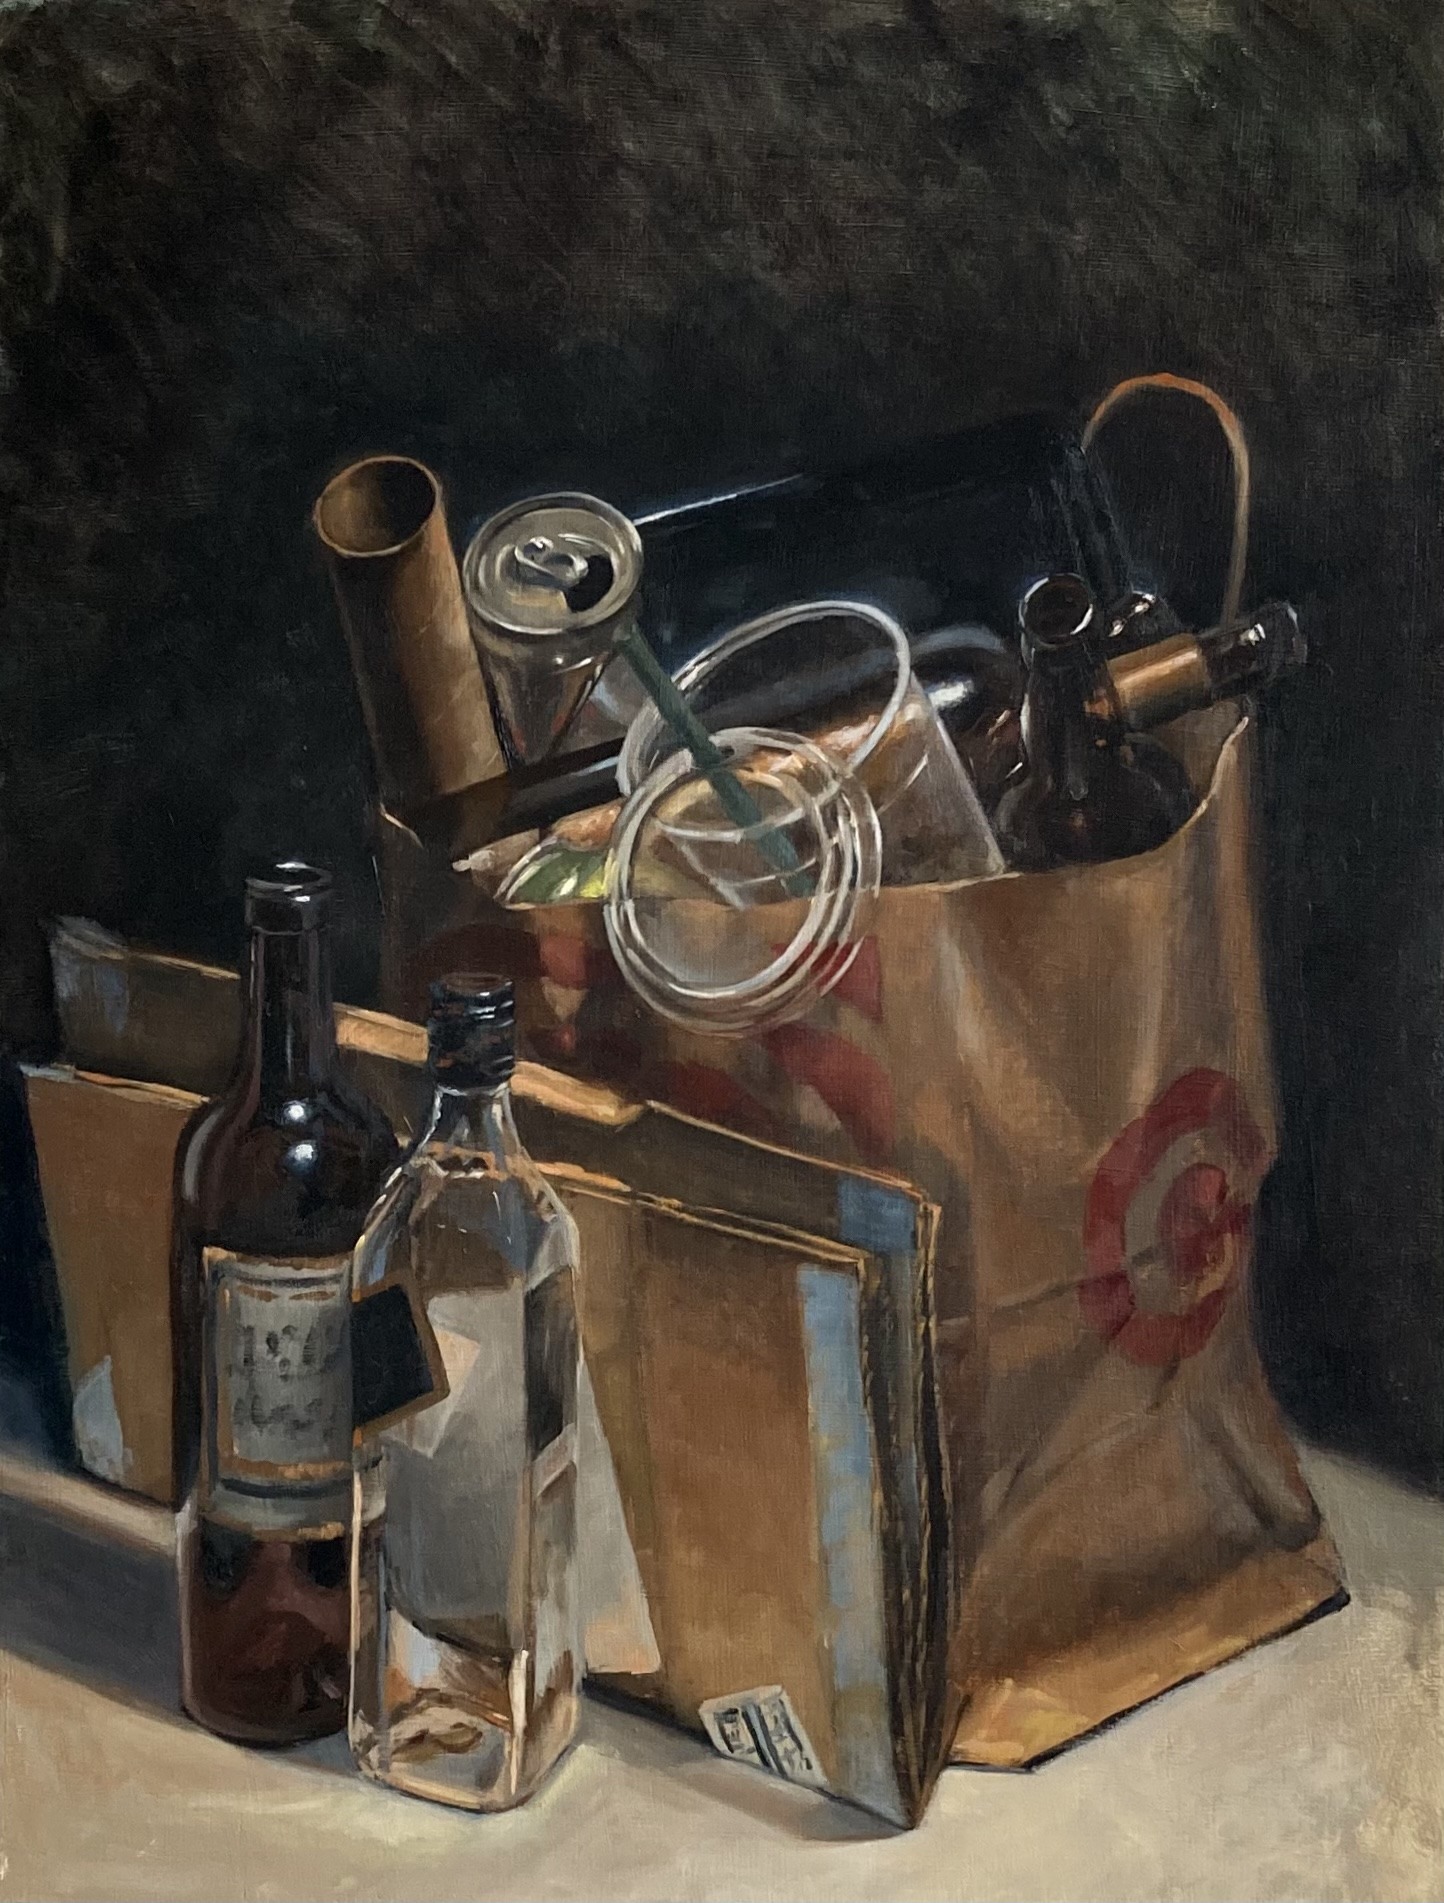 Adam Leveille  -  Recycling  -  oil on wood  -  24 x 18  -  $1800.00